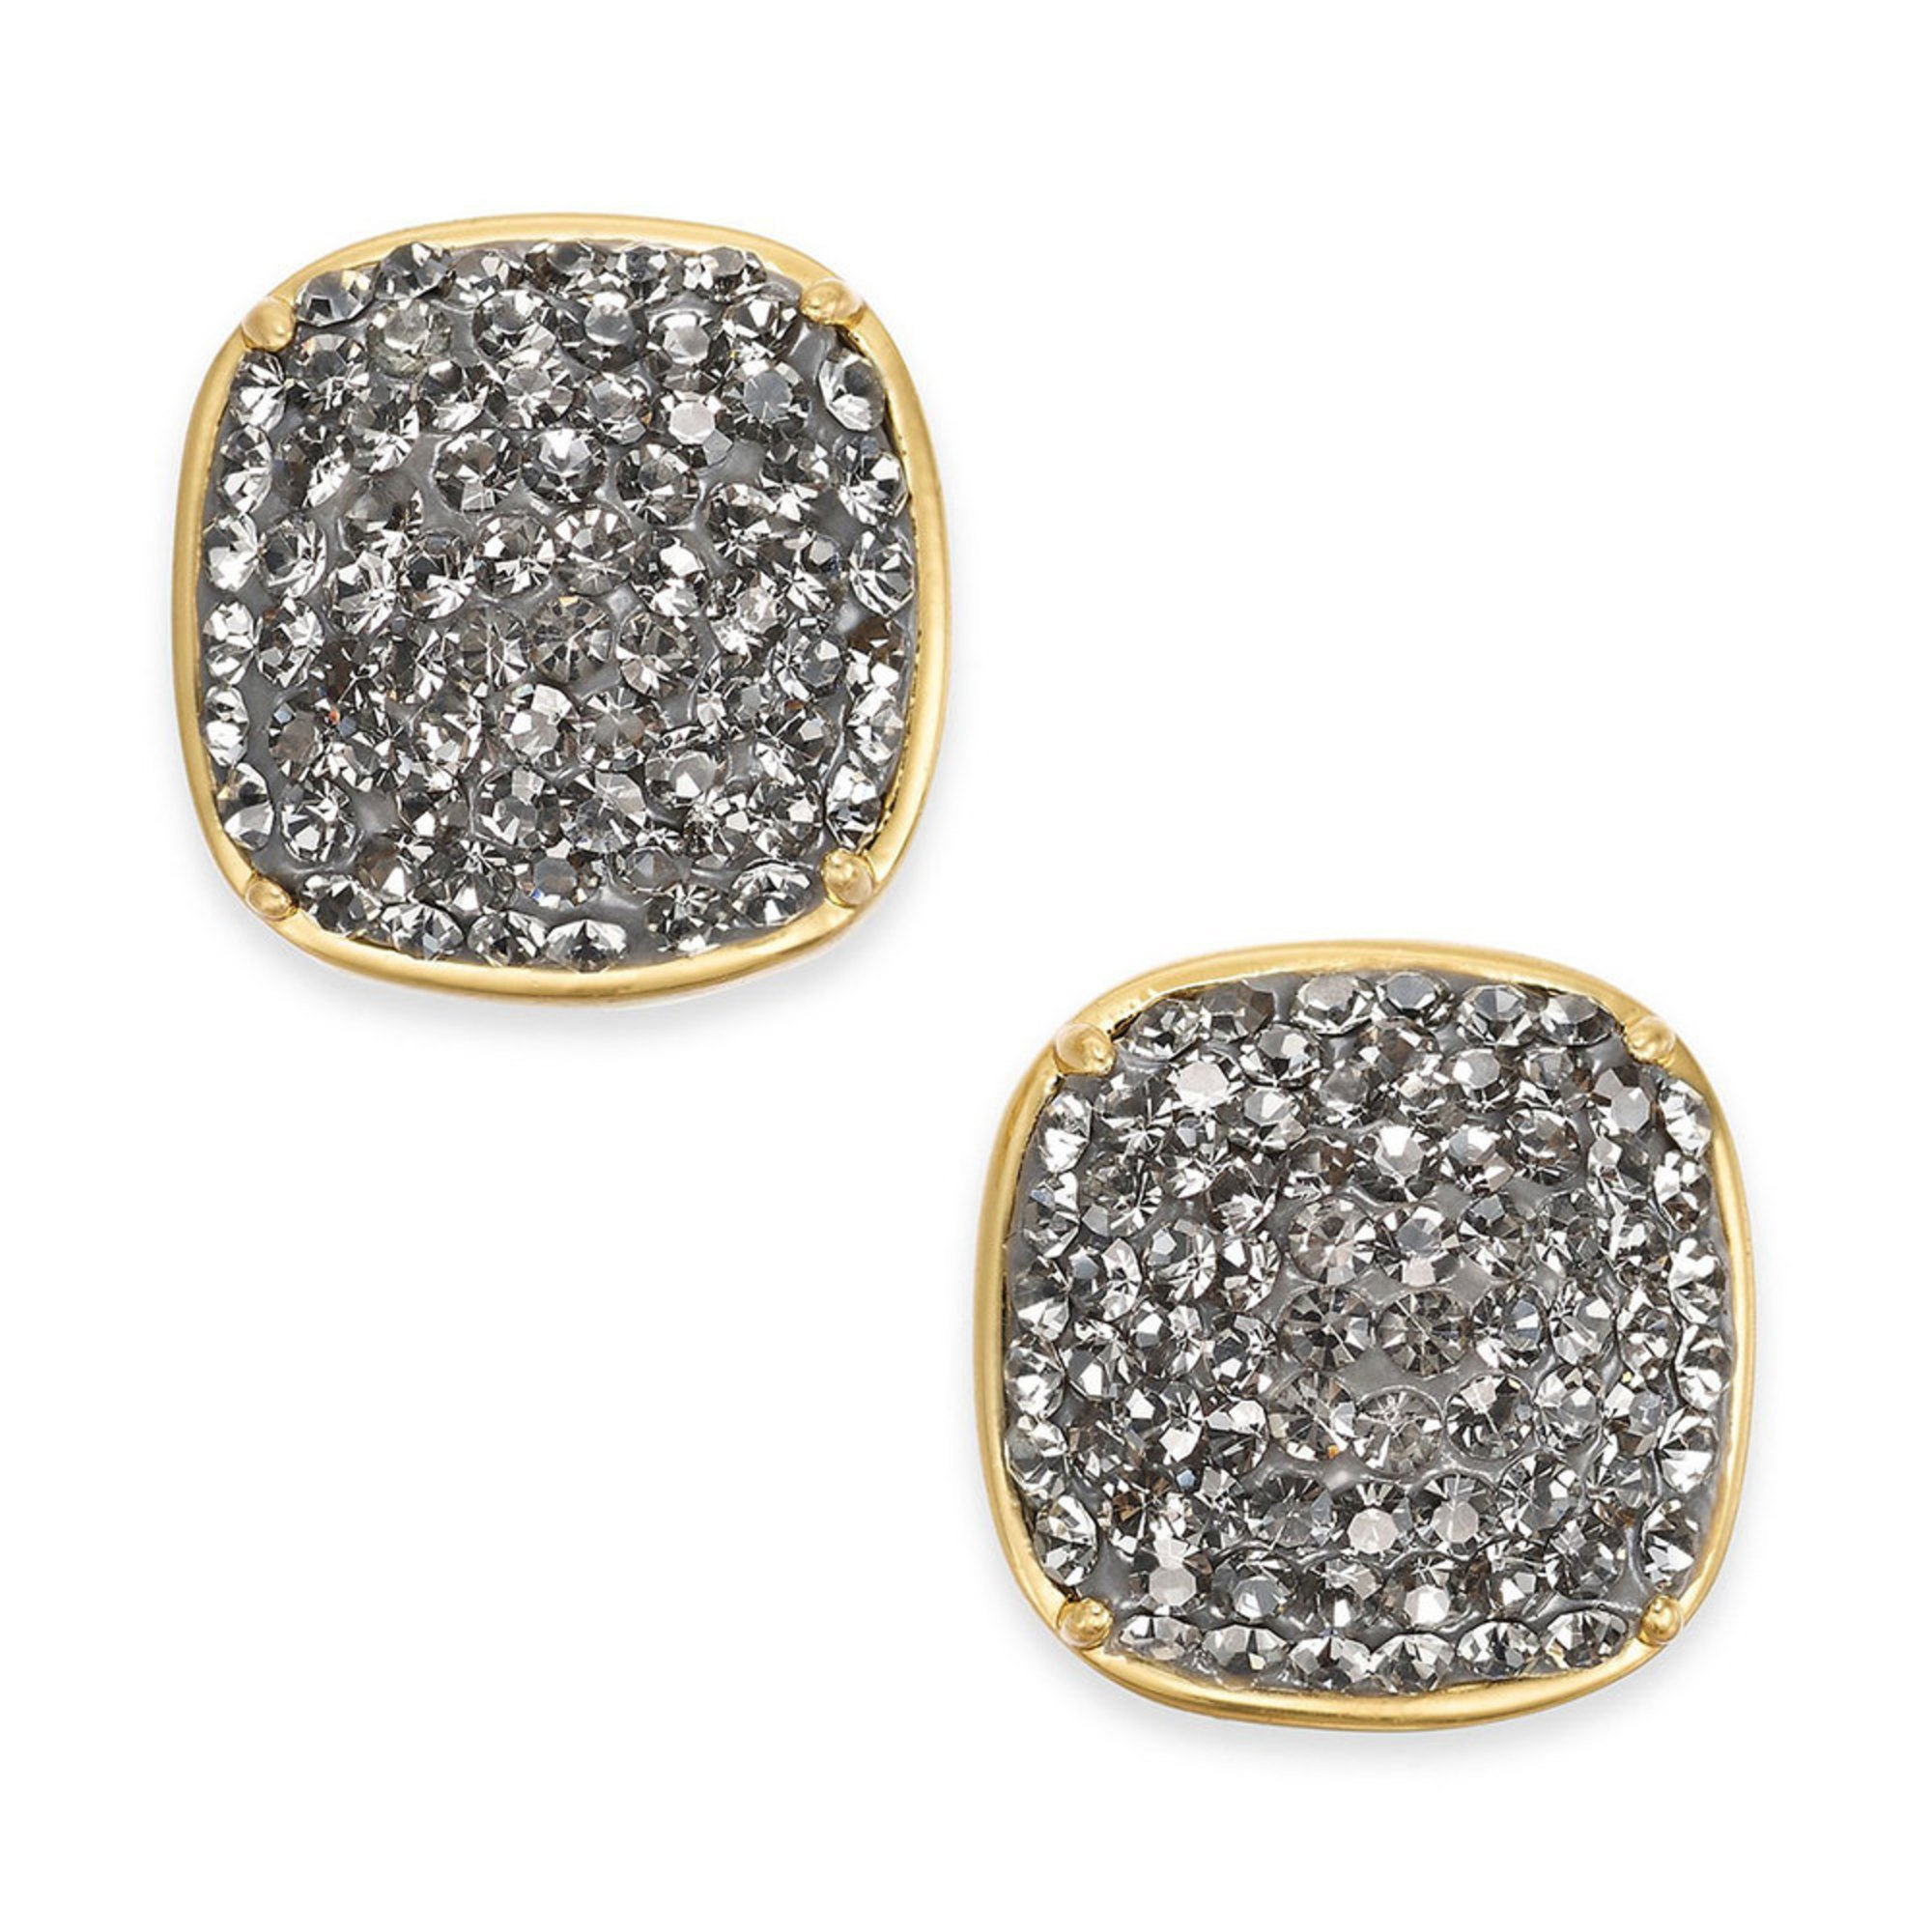 c38c32a1ad3753 Kate Spade New York. Kate Spade New York Black Diamond Clay Pave Small  Square Stud Earrings, Gold Tone